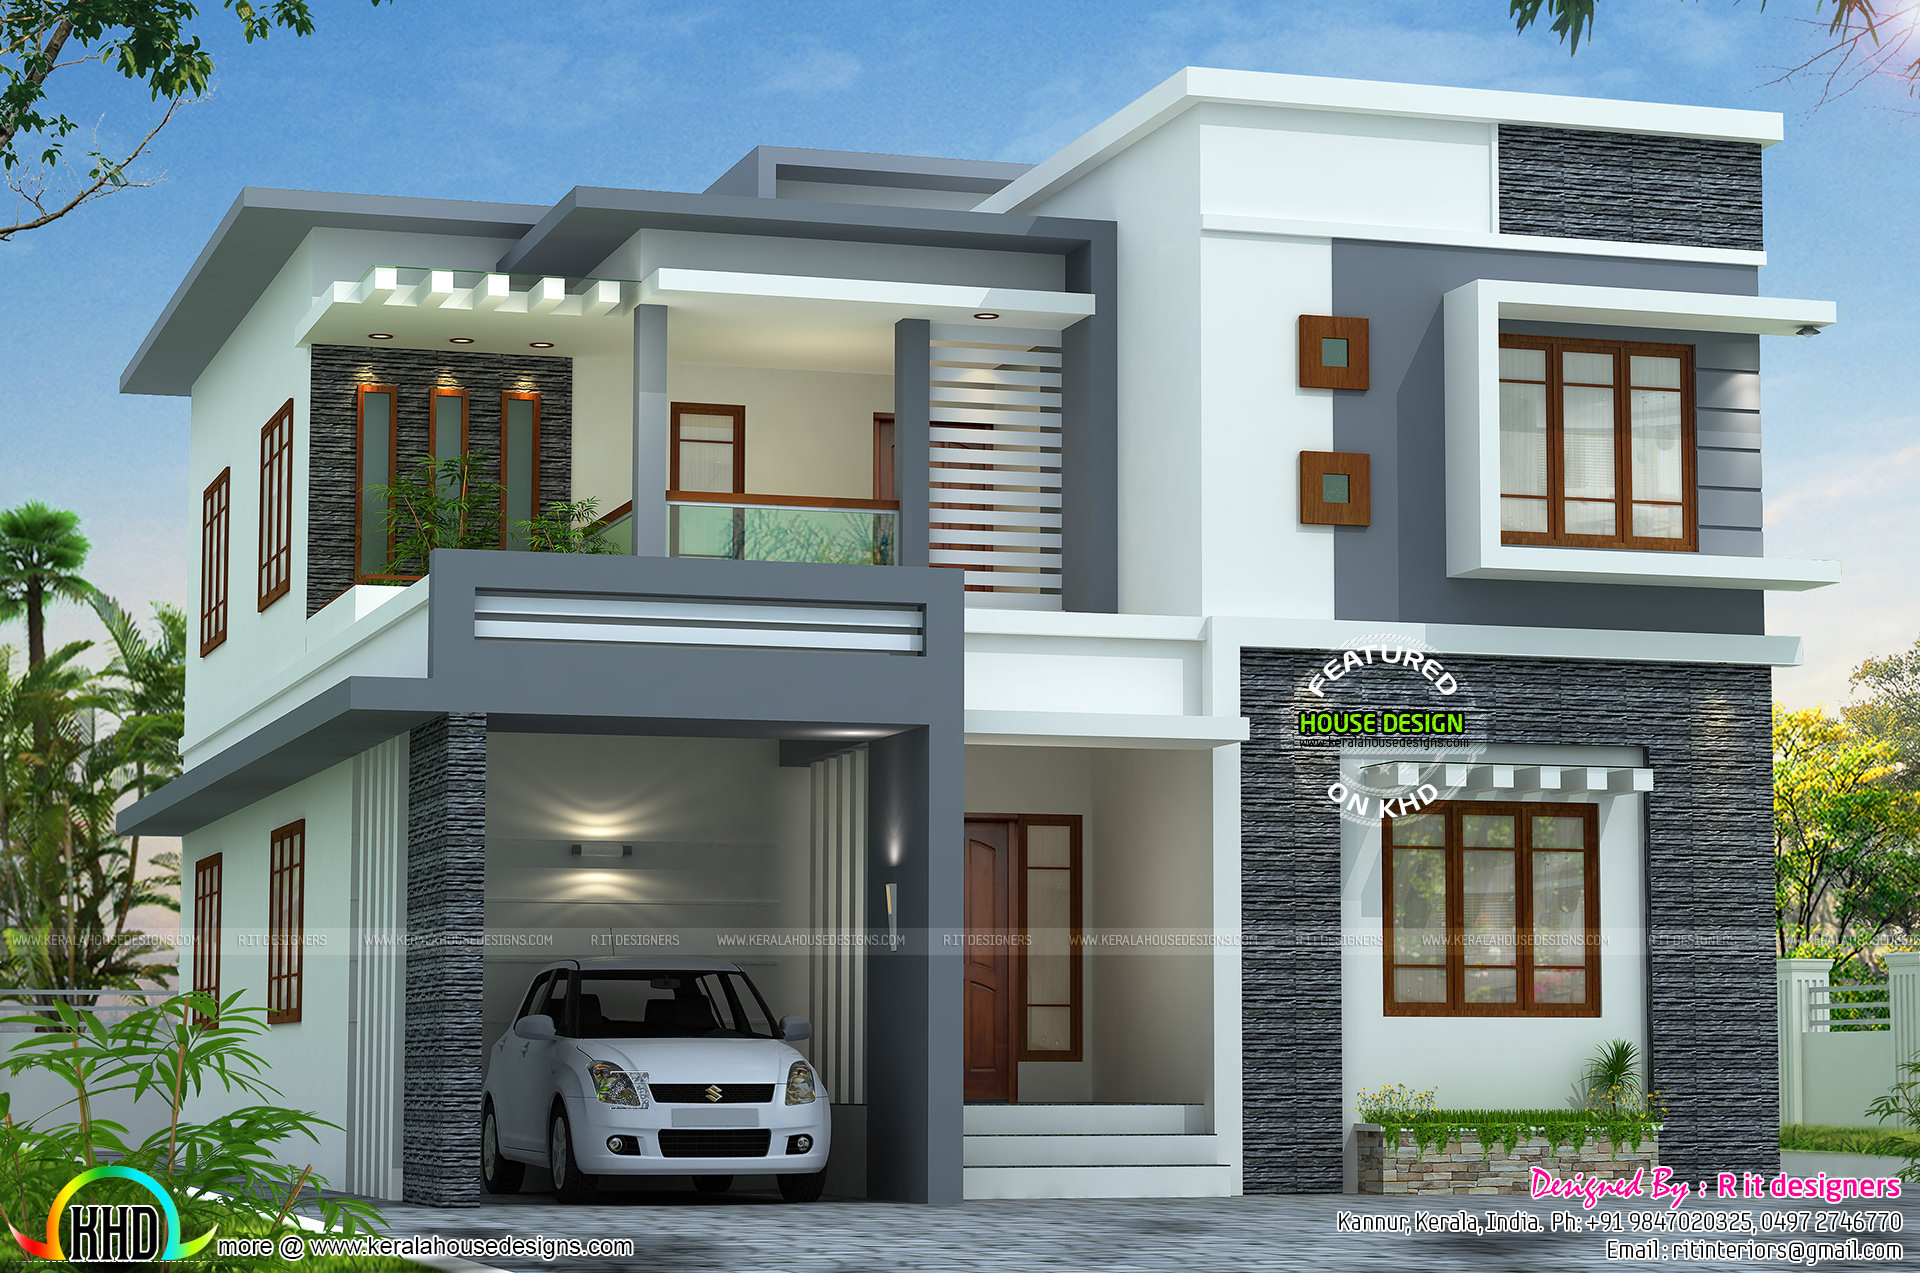 2767 sqft apartment roof means identify  Kerala identify pattern together with flooring plans